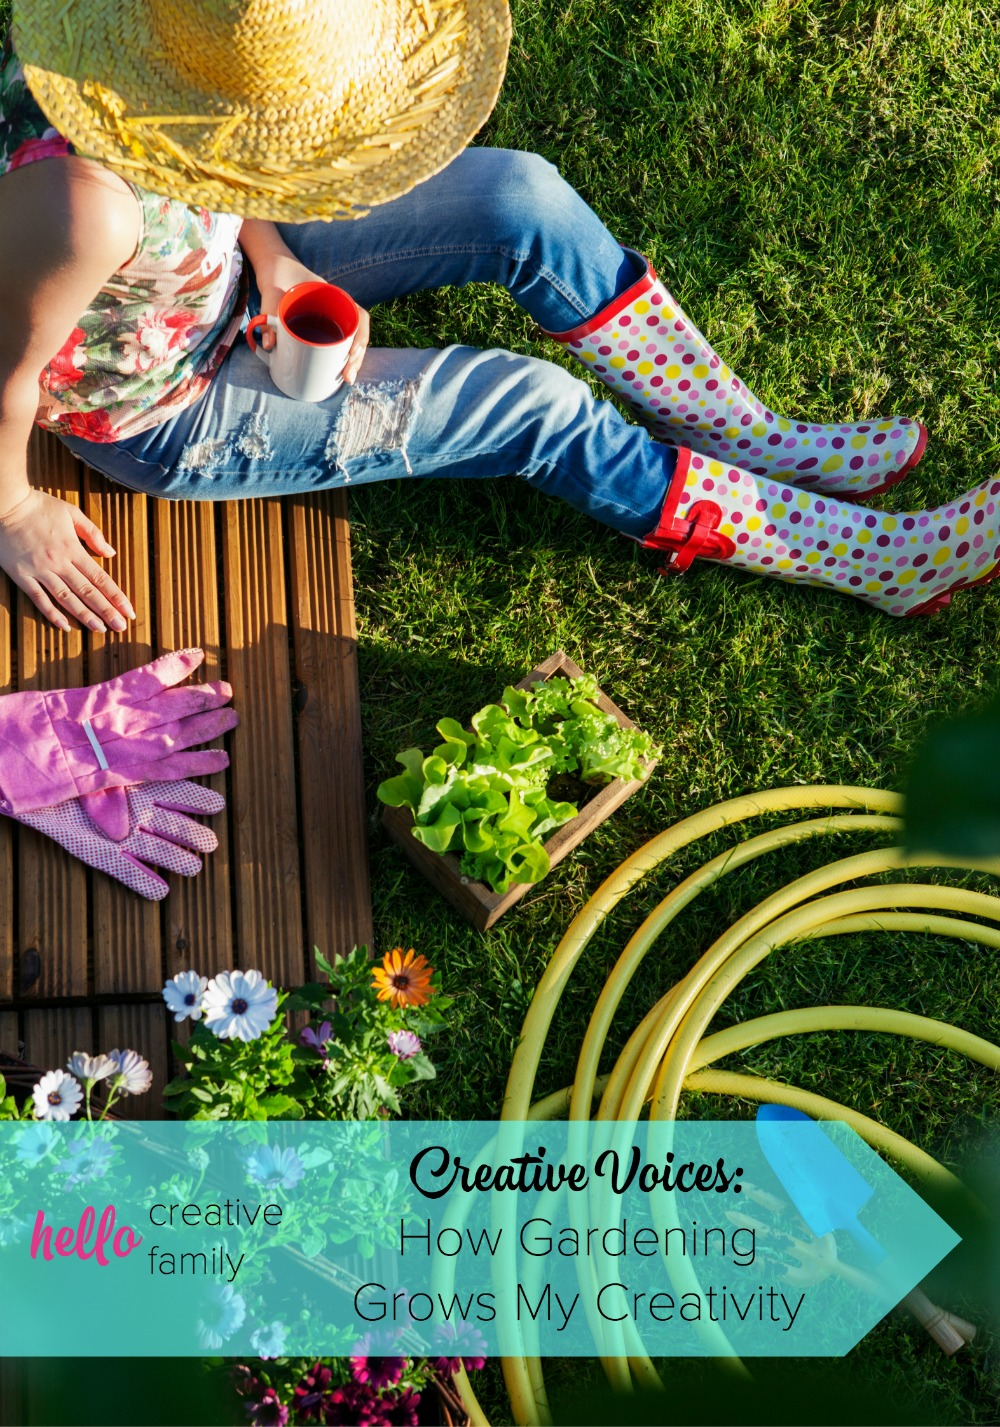 Life is busy, but that's no excuse to not spend time being creative. One writer shares the places that she manages to find her creative inspiration, including when she is gardening.